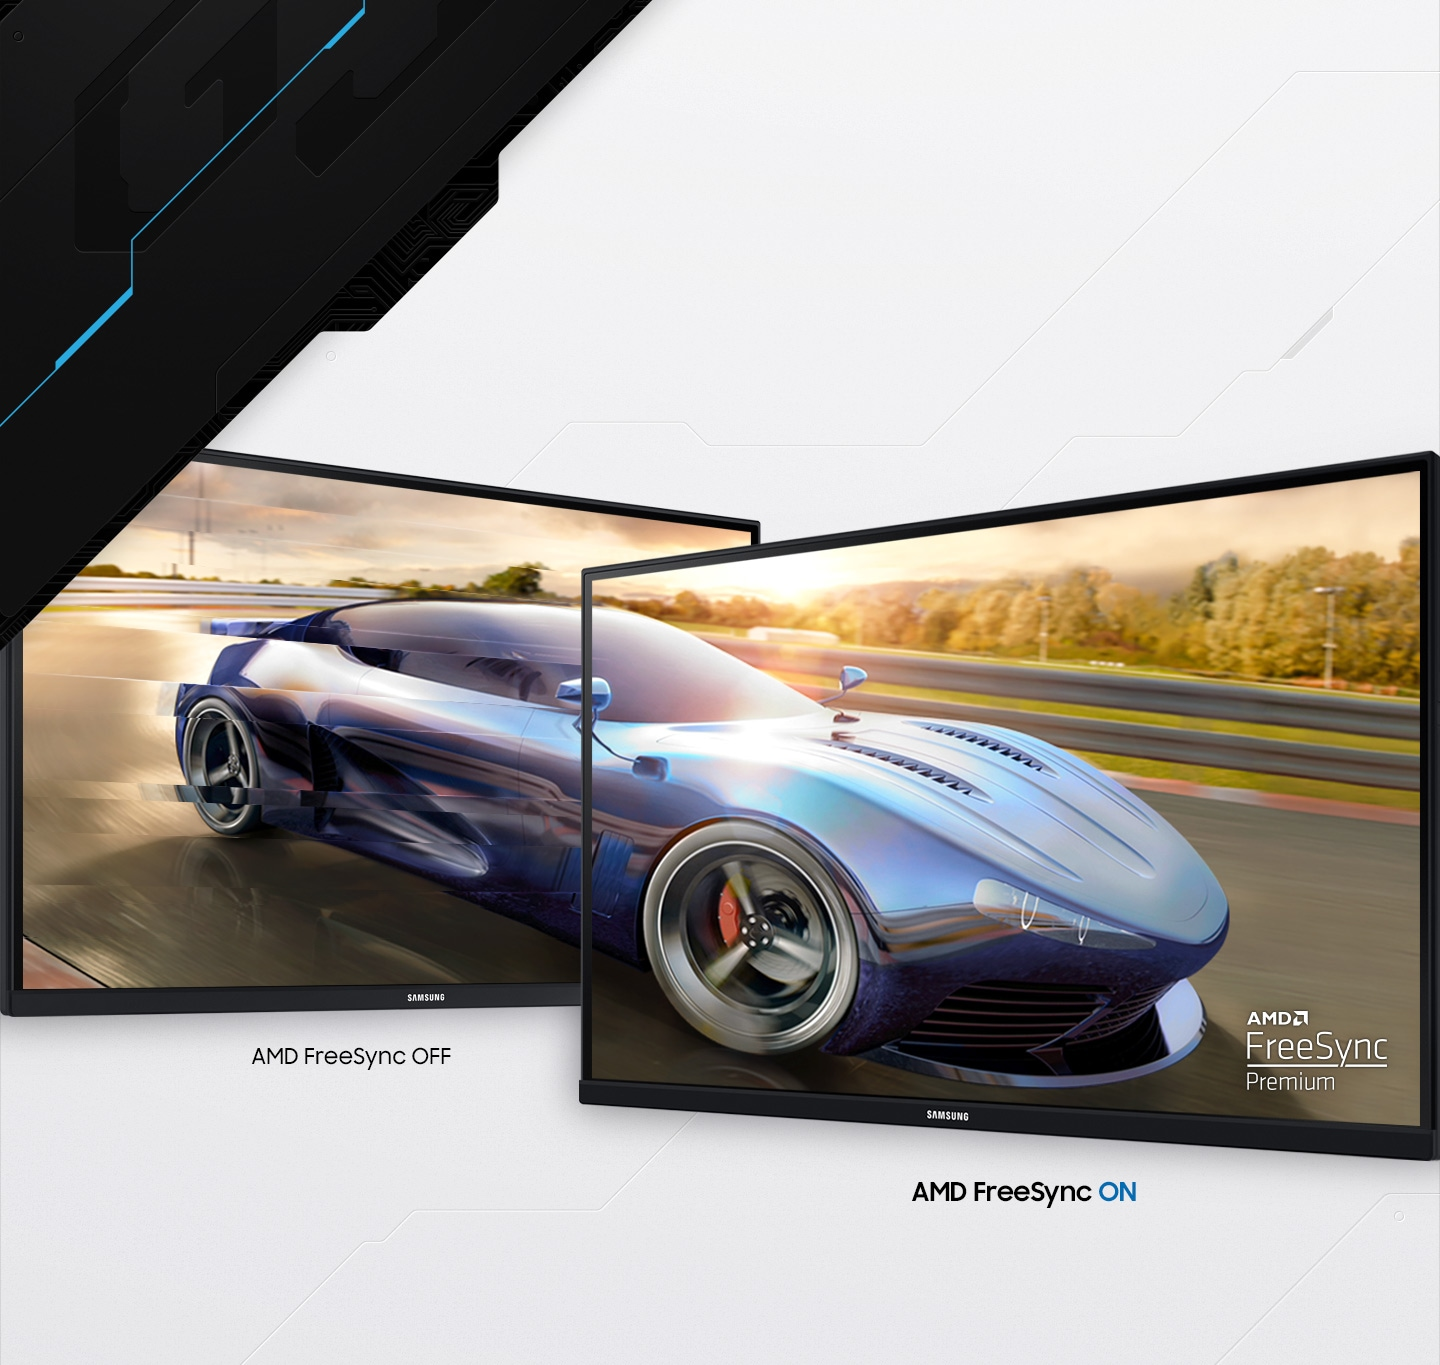 The benefit of AMD FreeSync Premium is explained with the tearing picture on the screen when the feature is off.